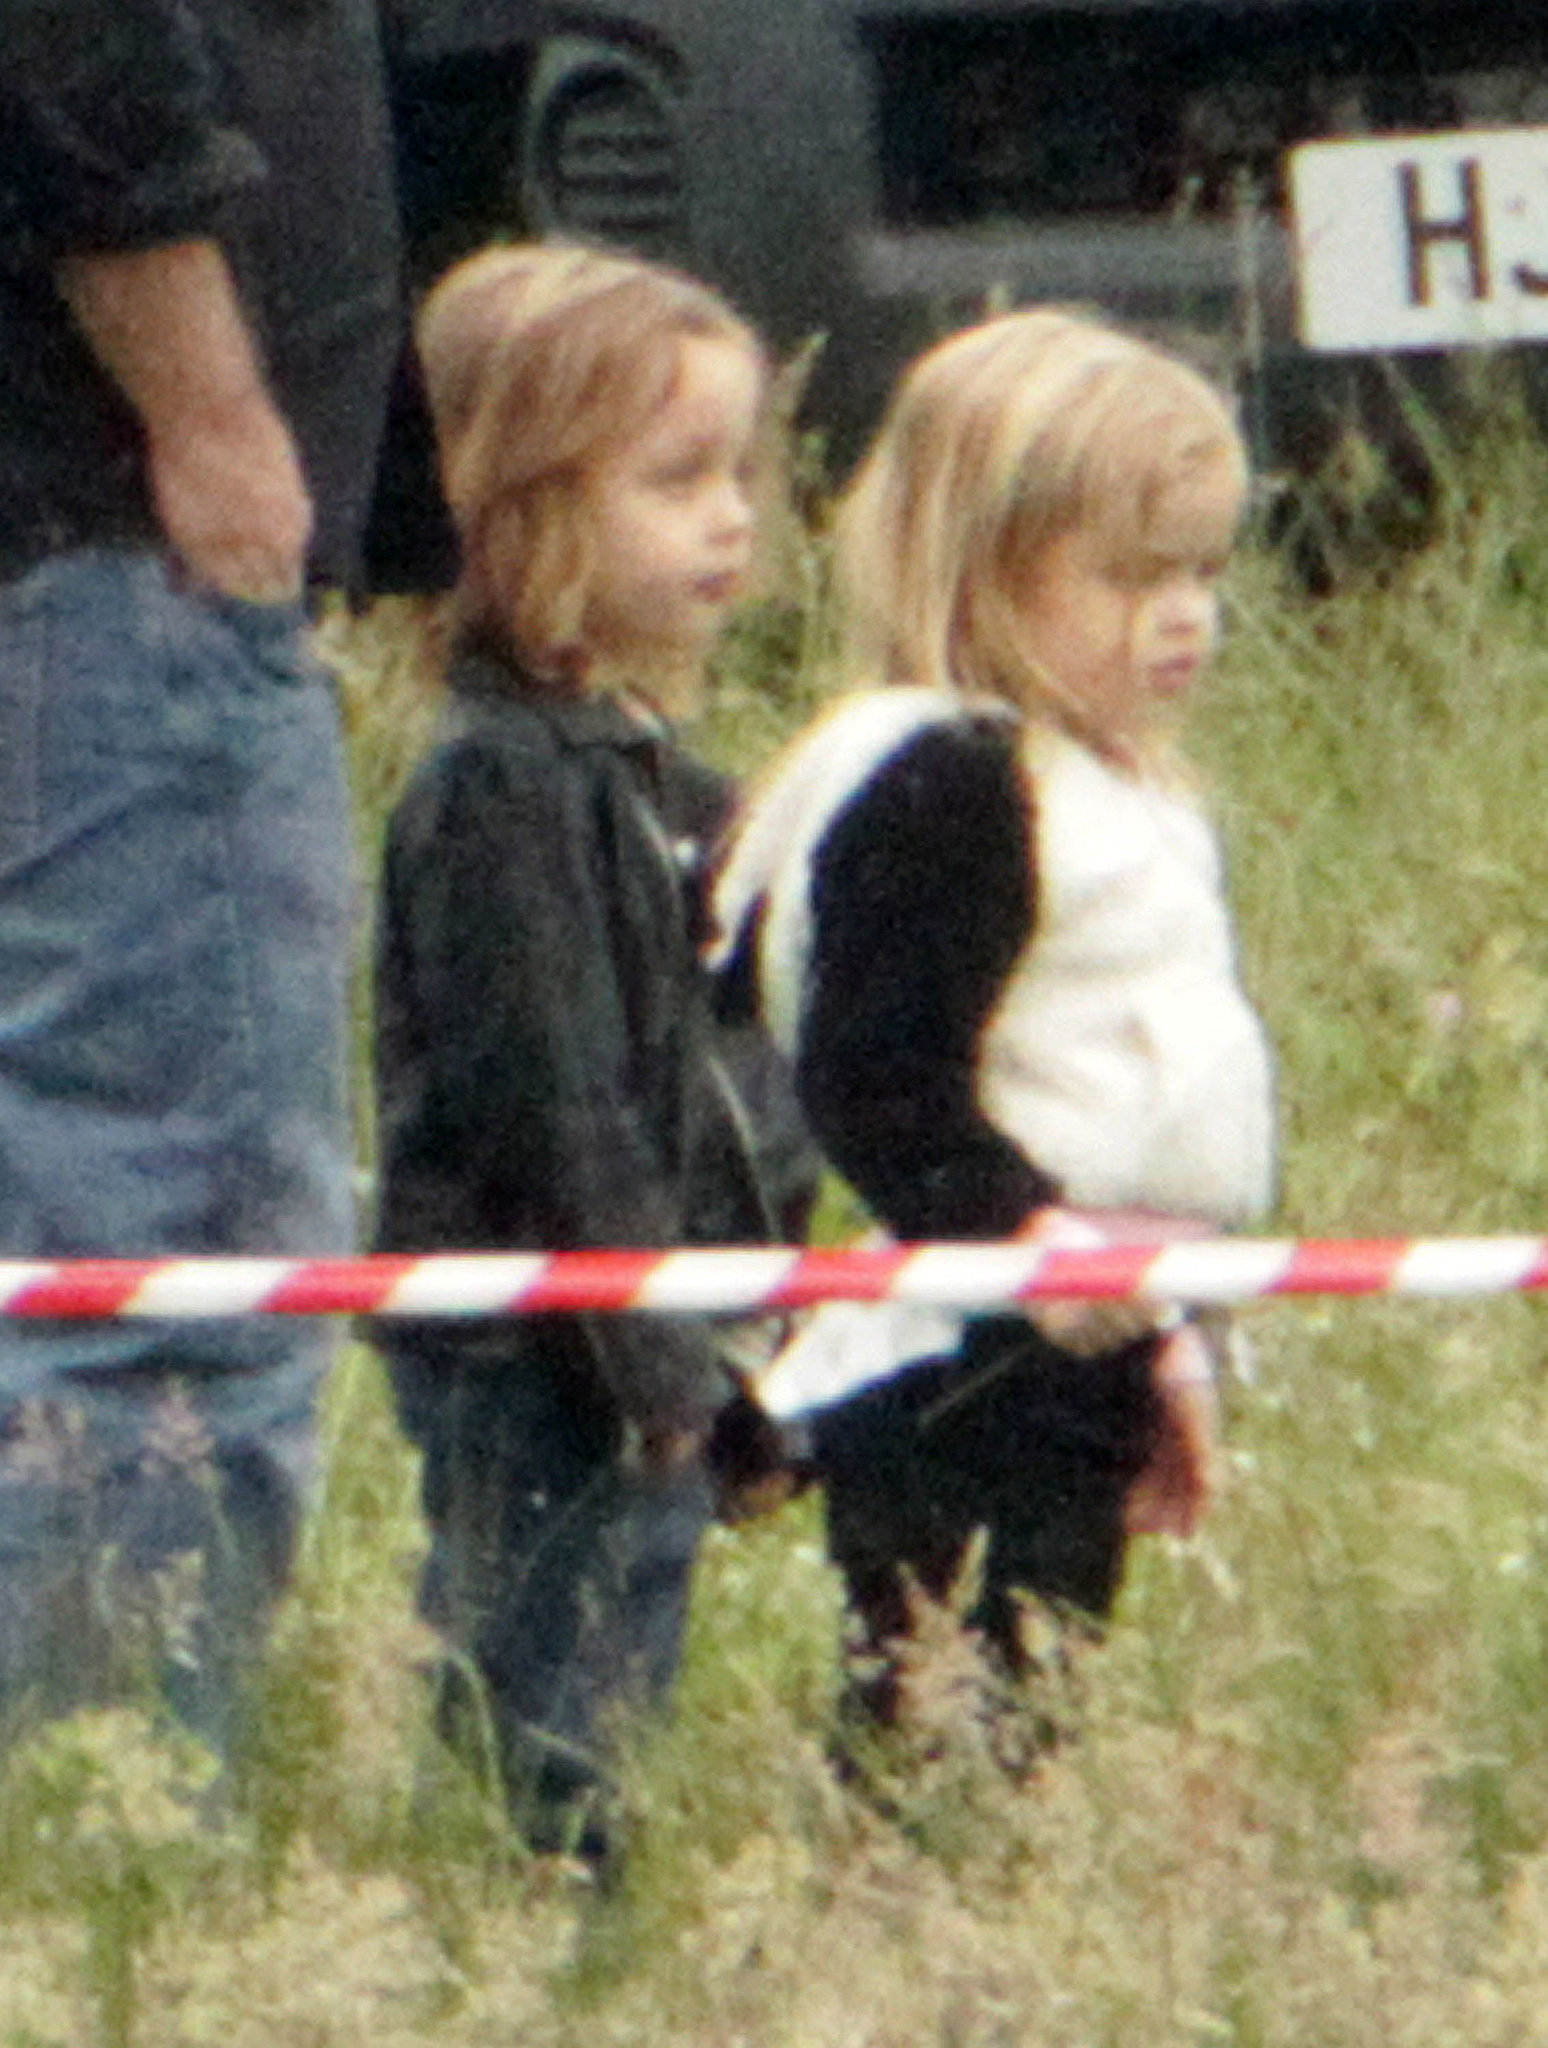 Knox Jolie-Pitt and Vivienne Jolie-Pitt visited mom Angelina Jolie while she was filming on the set of Maleficent in the UK in June 2012.